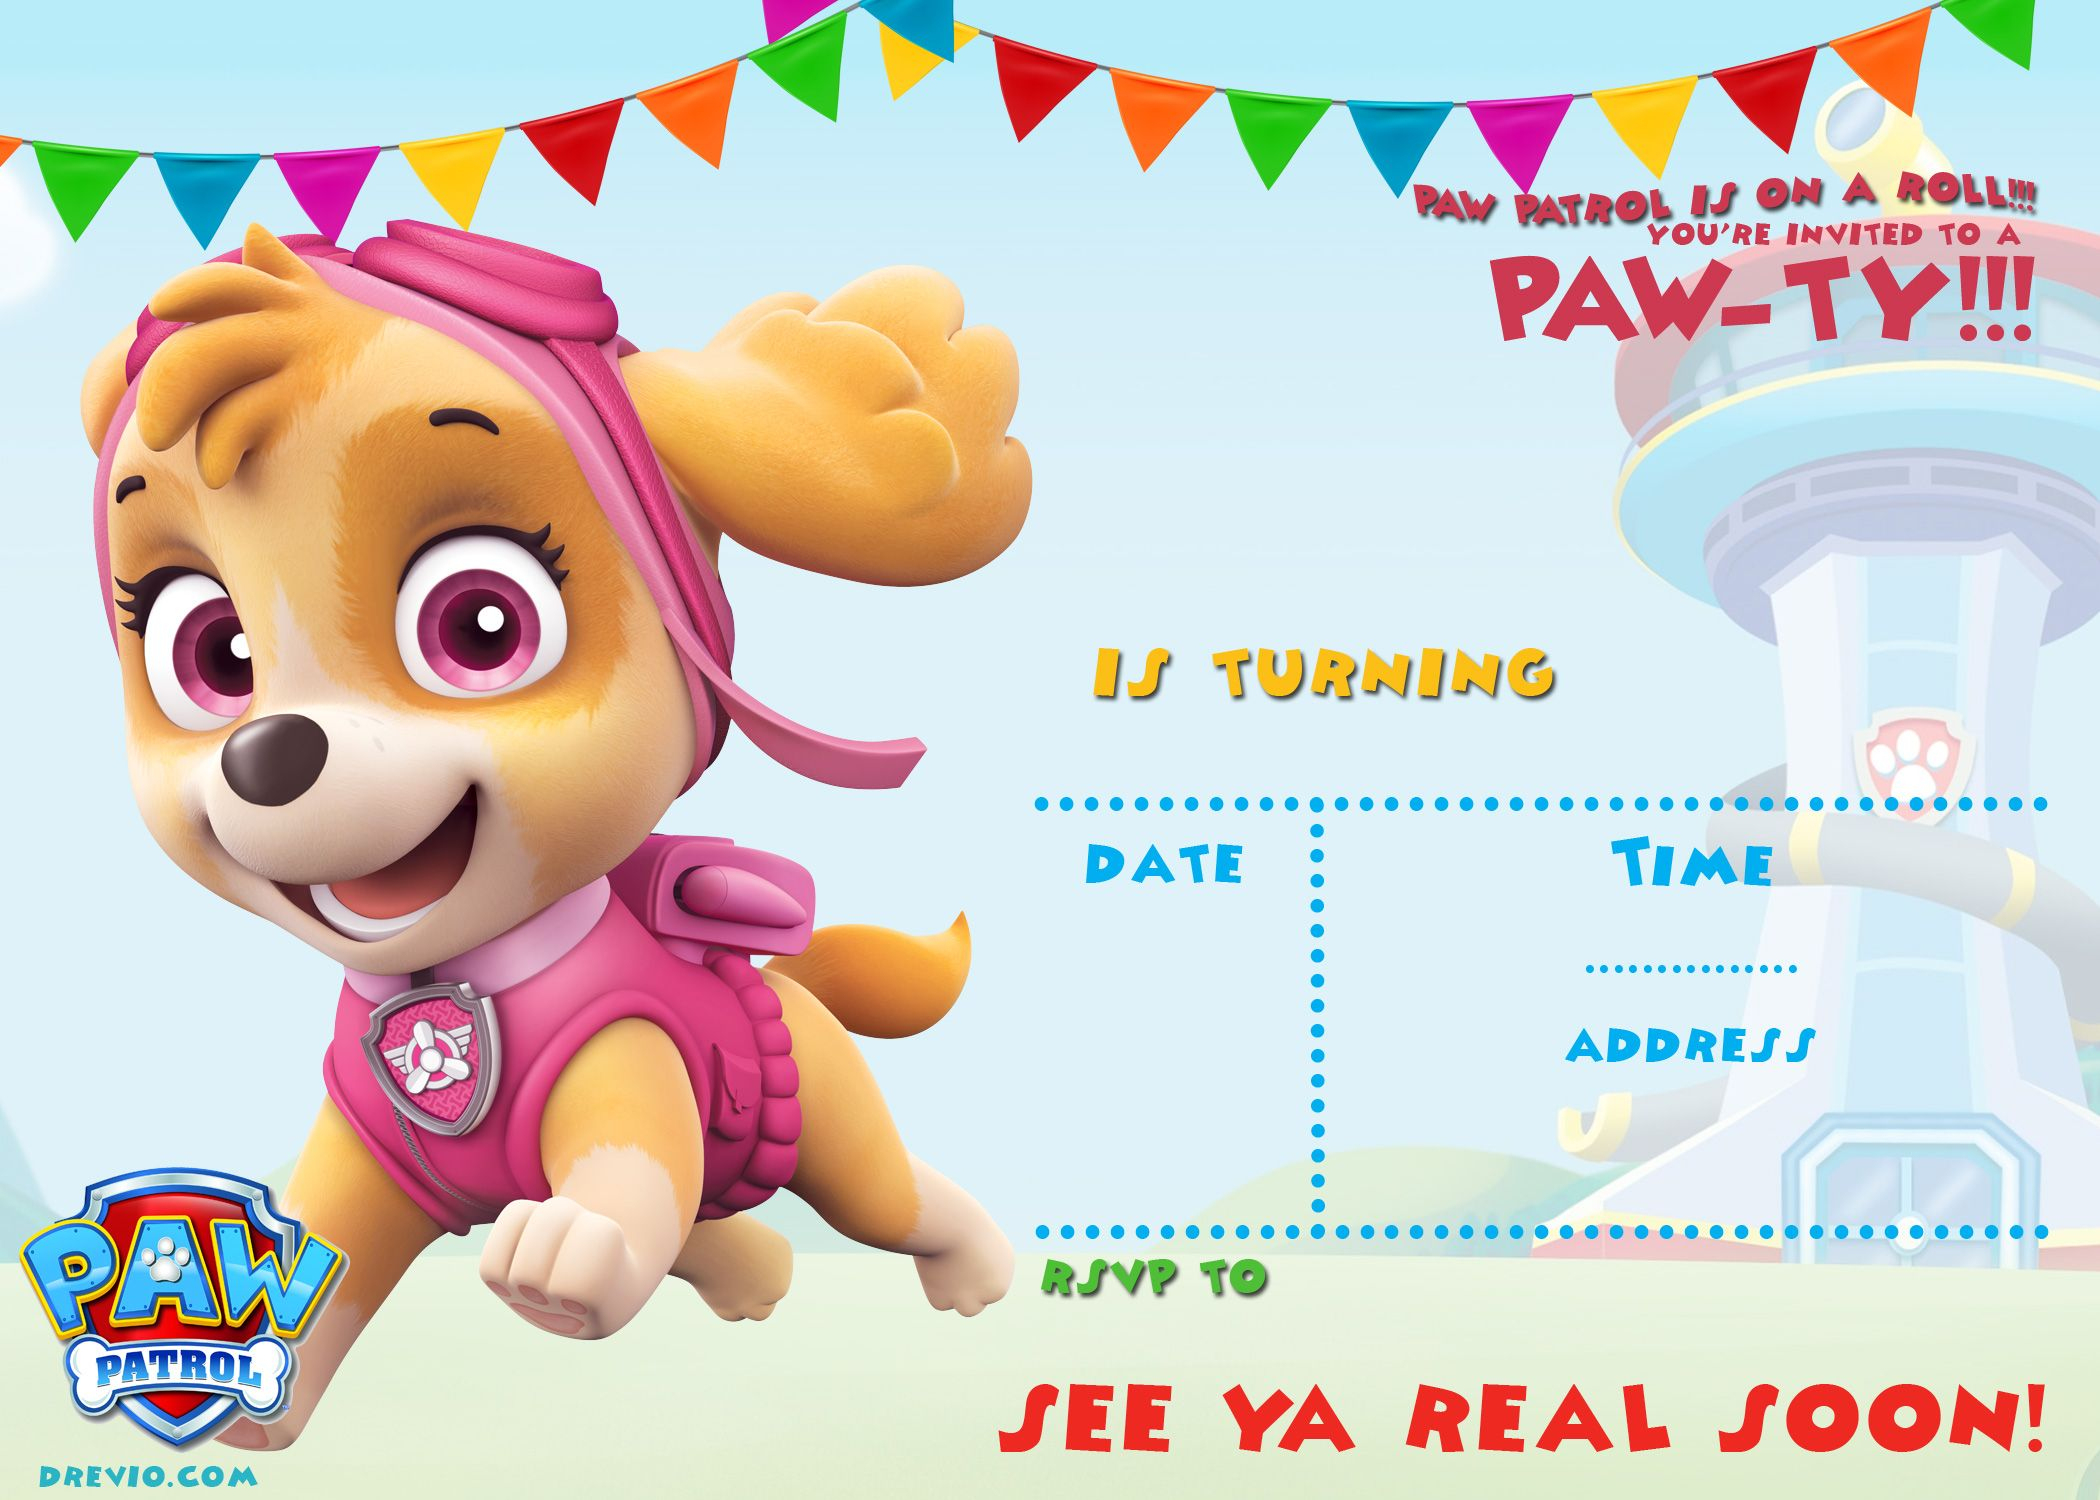 Free Printable Paw Patrol Invitation Template - All | Free - Free Printable Paw Patrol Invitations